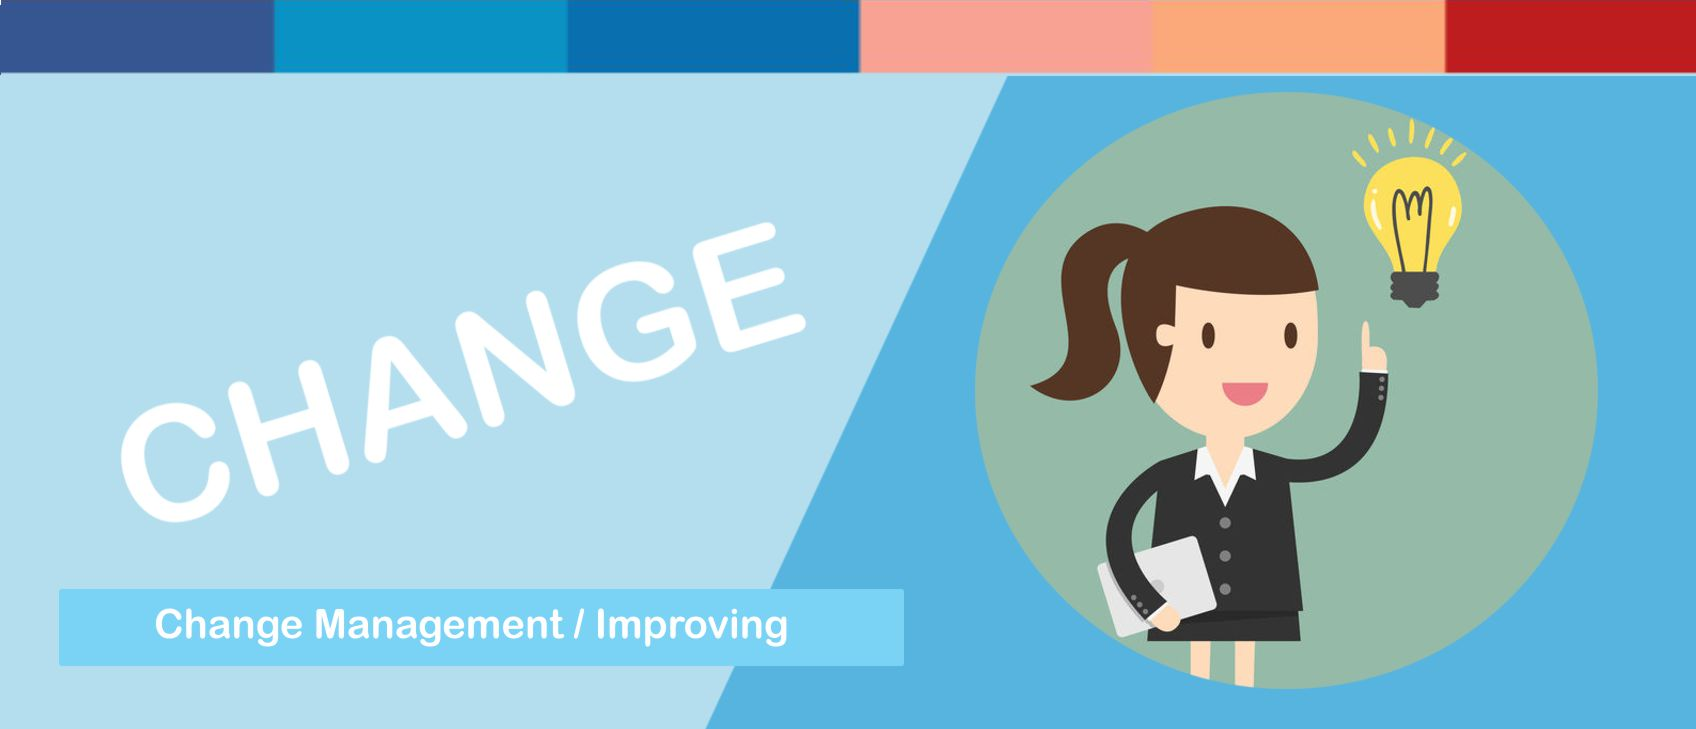 Changing and Improving / Change Management Competency